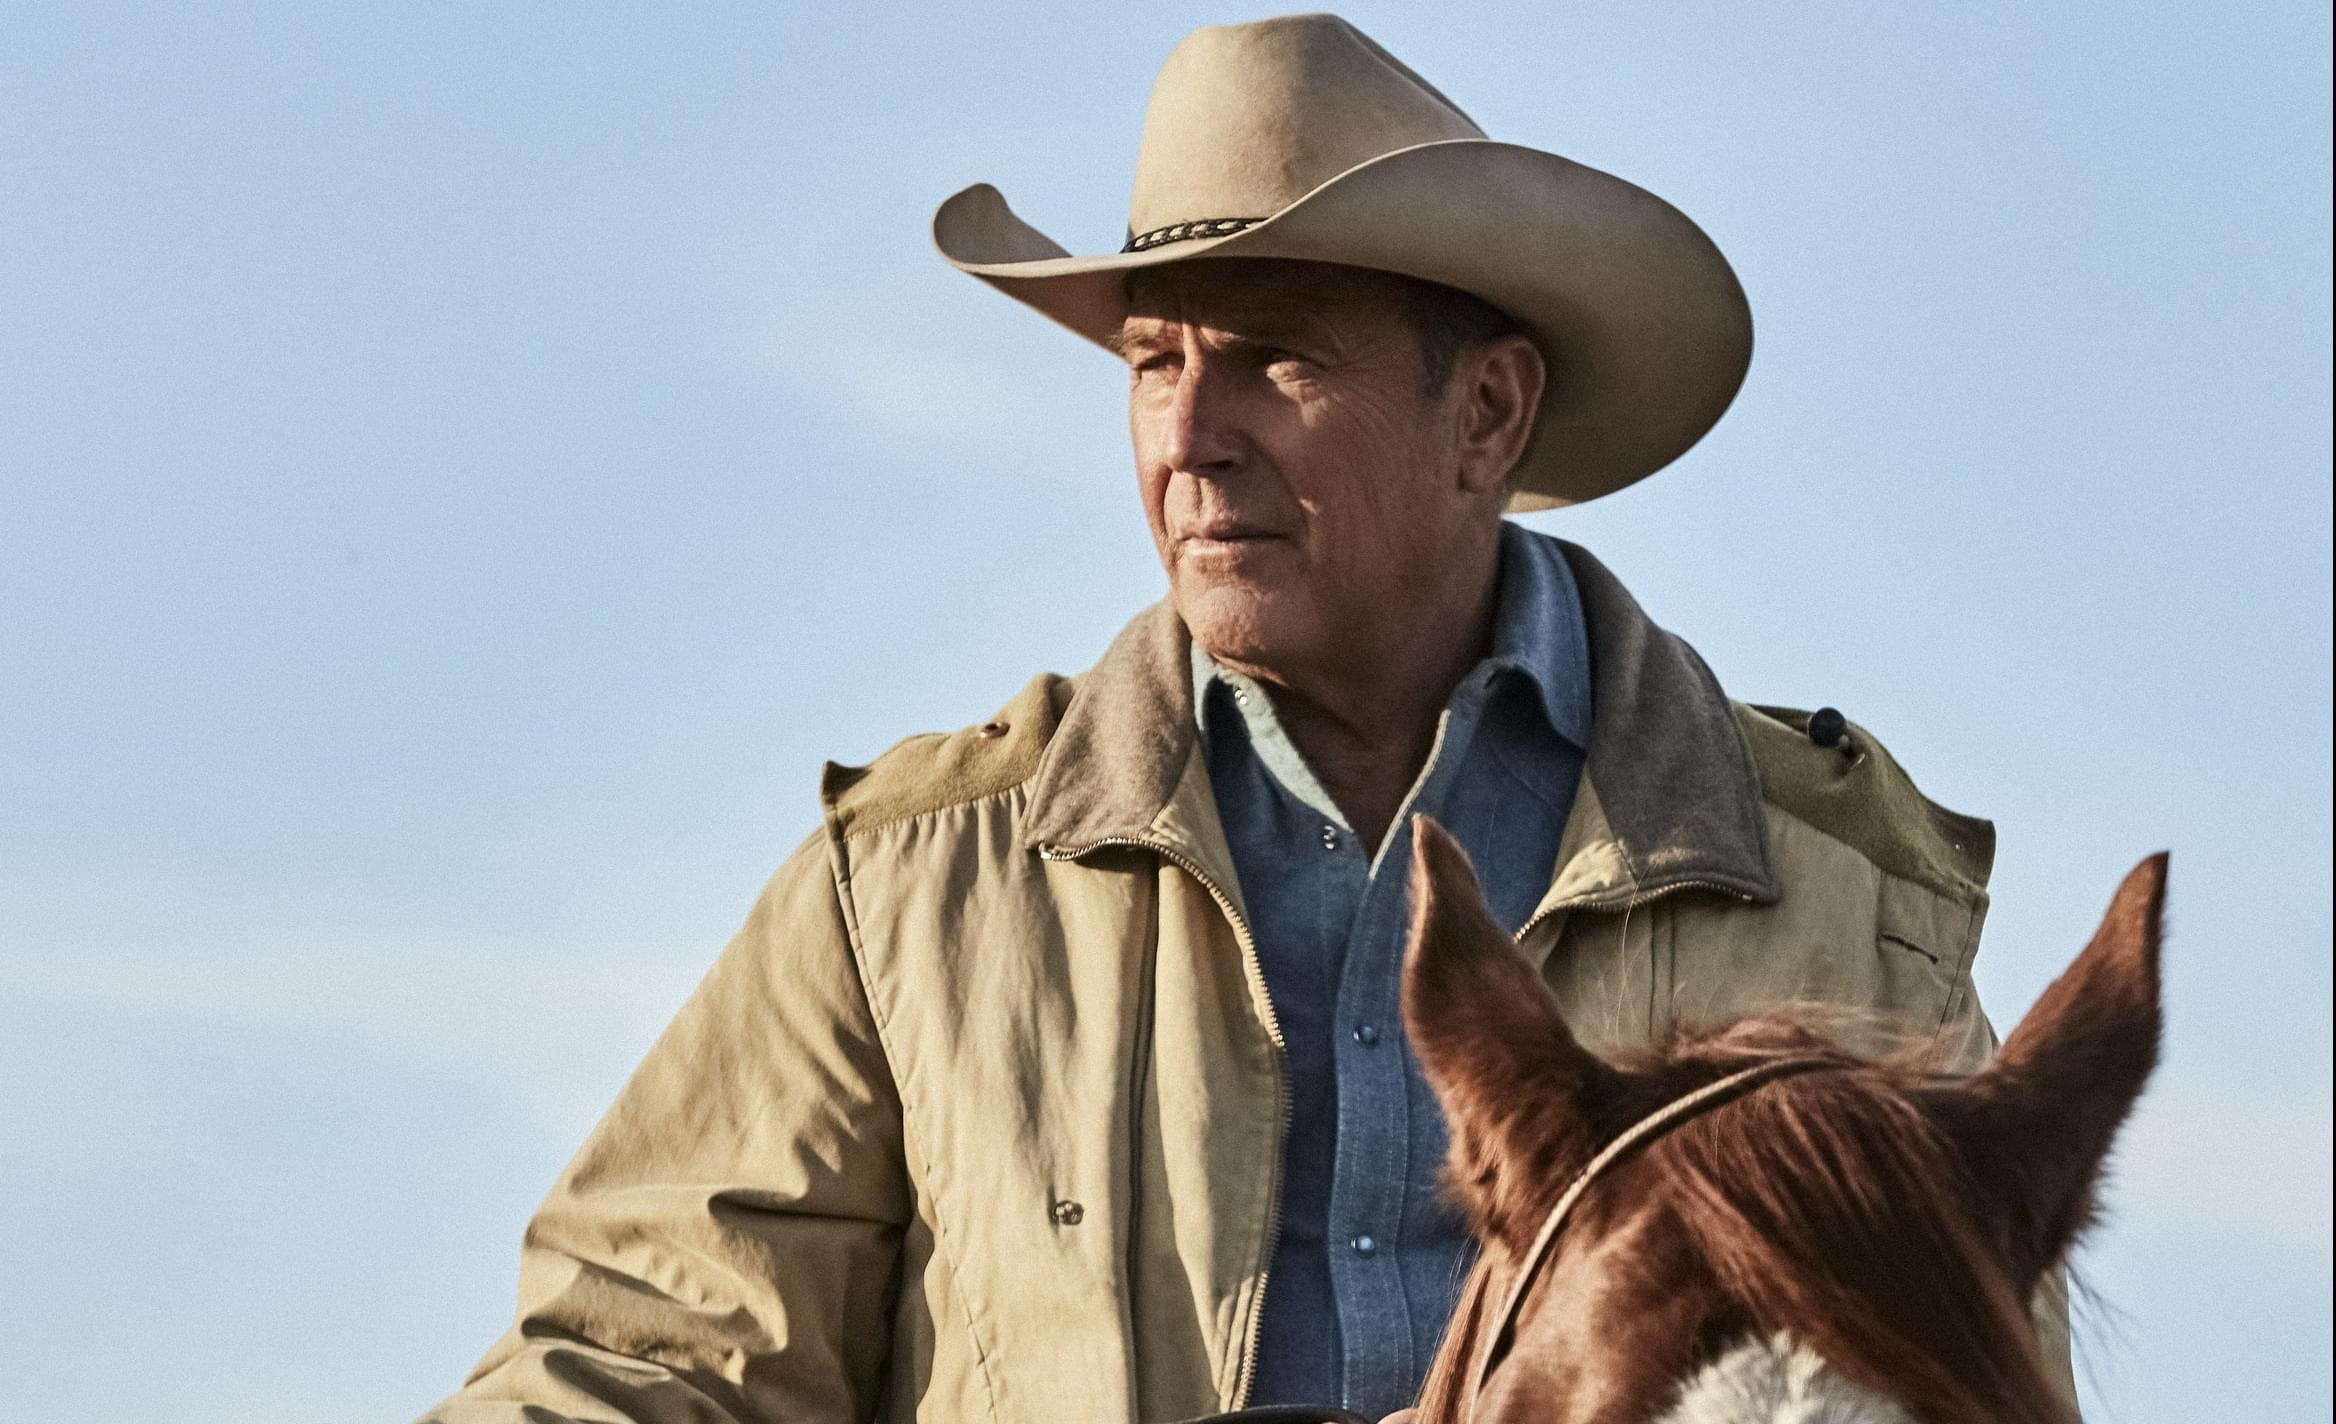 KEVIN COSTNER SADDLES UP FOR TV IN 'YELLOWSTONE'